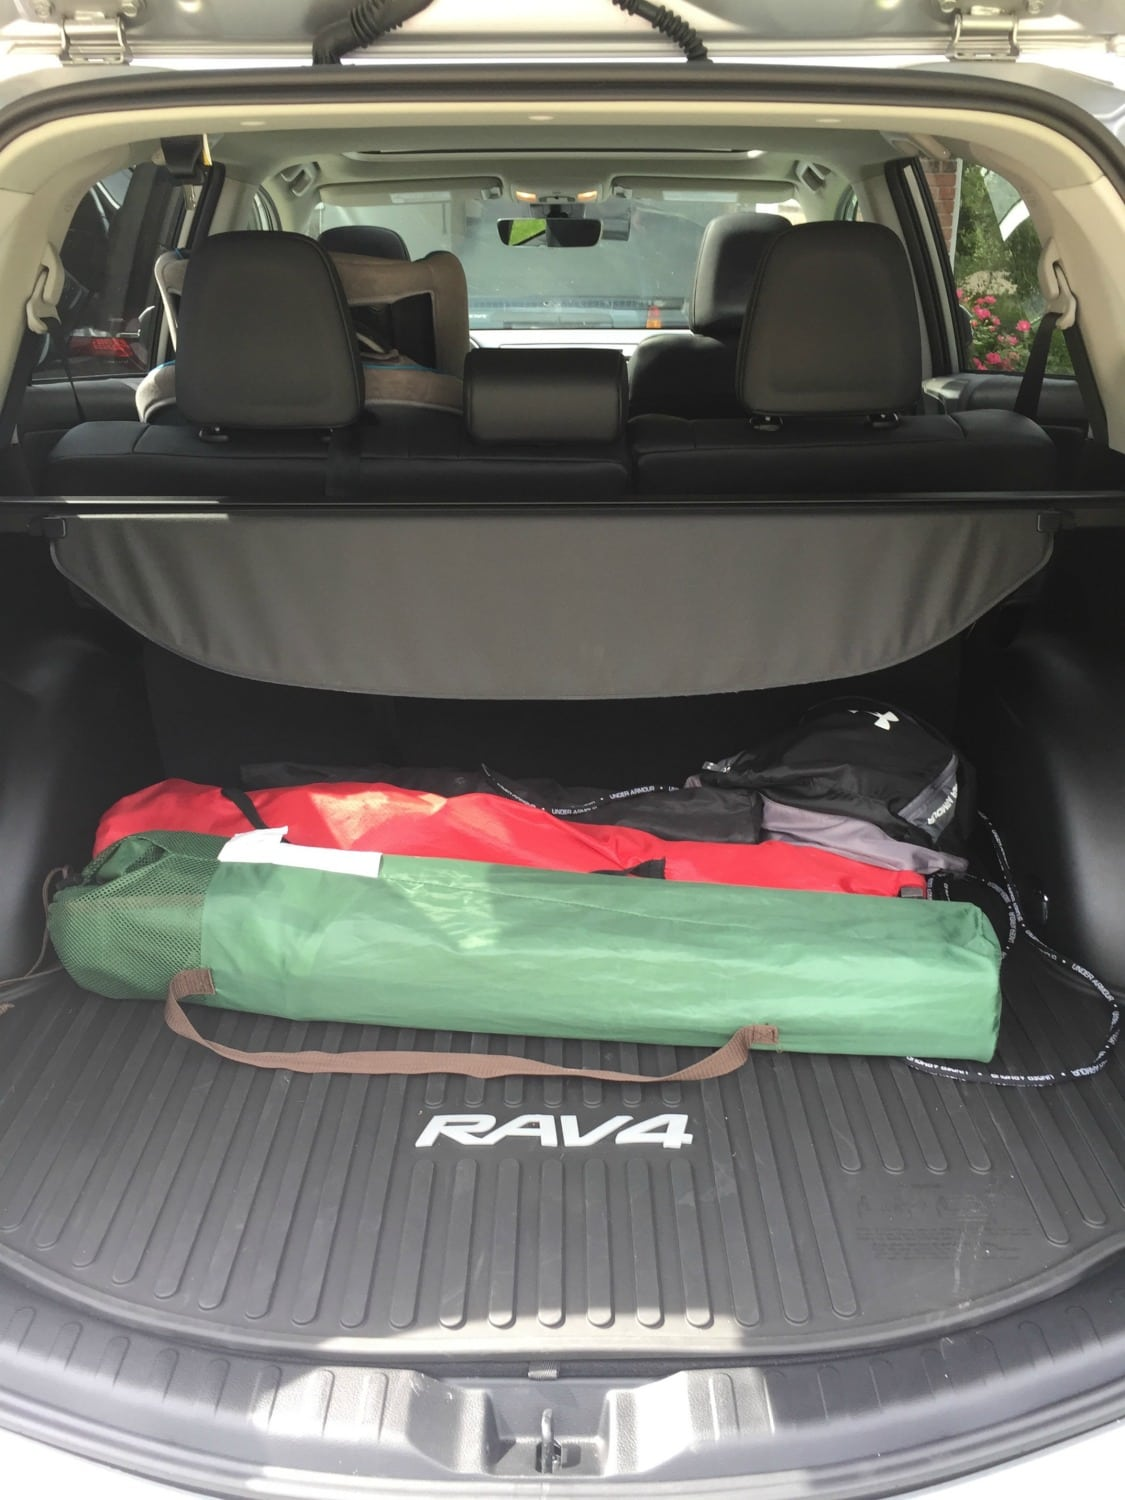 2017 toyota rav4 platinum review why the rav4 is great for families. Black Bedroom Furniture Sets. Home Design Ideas